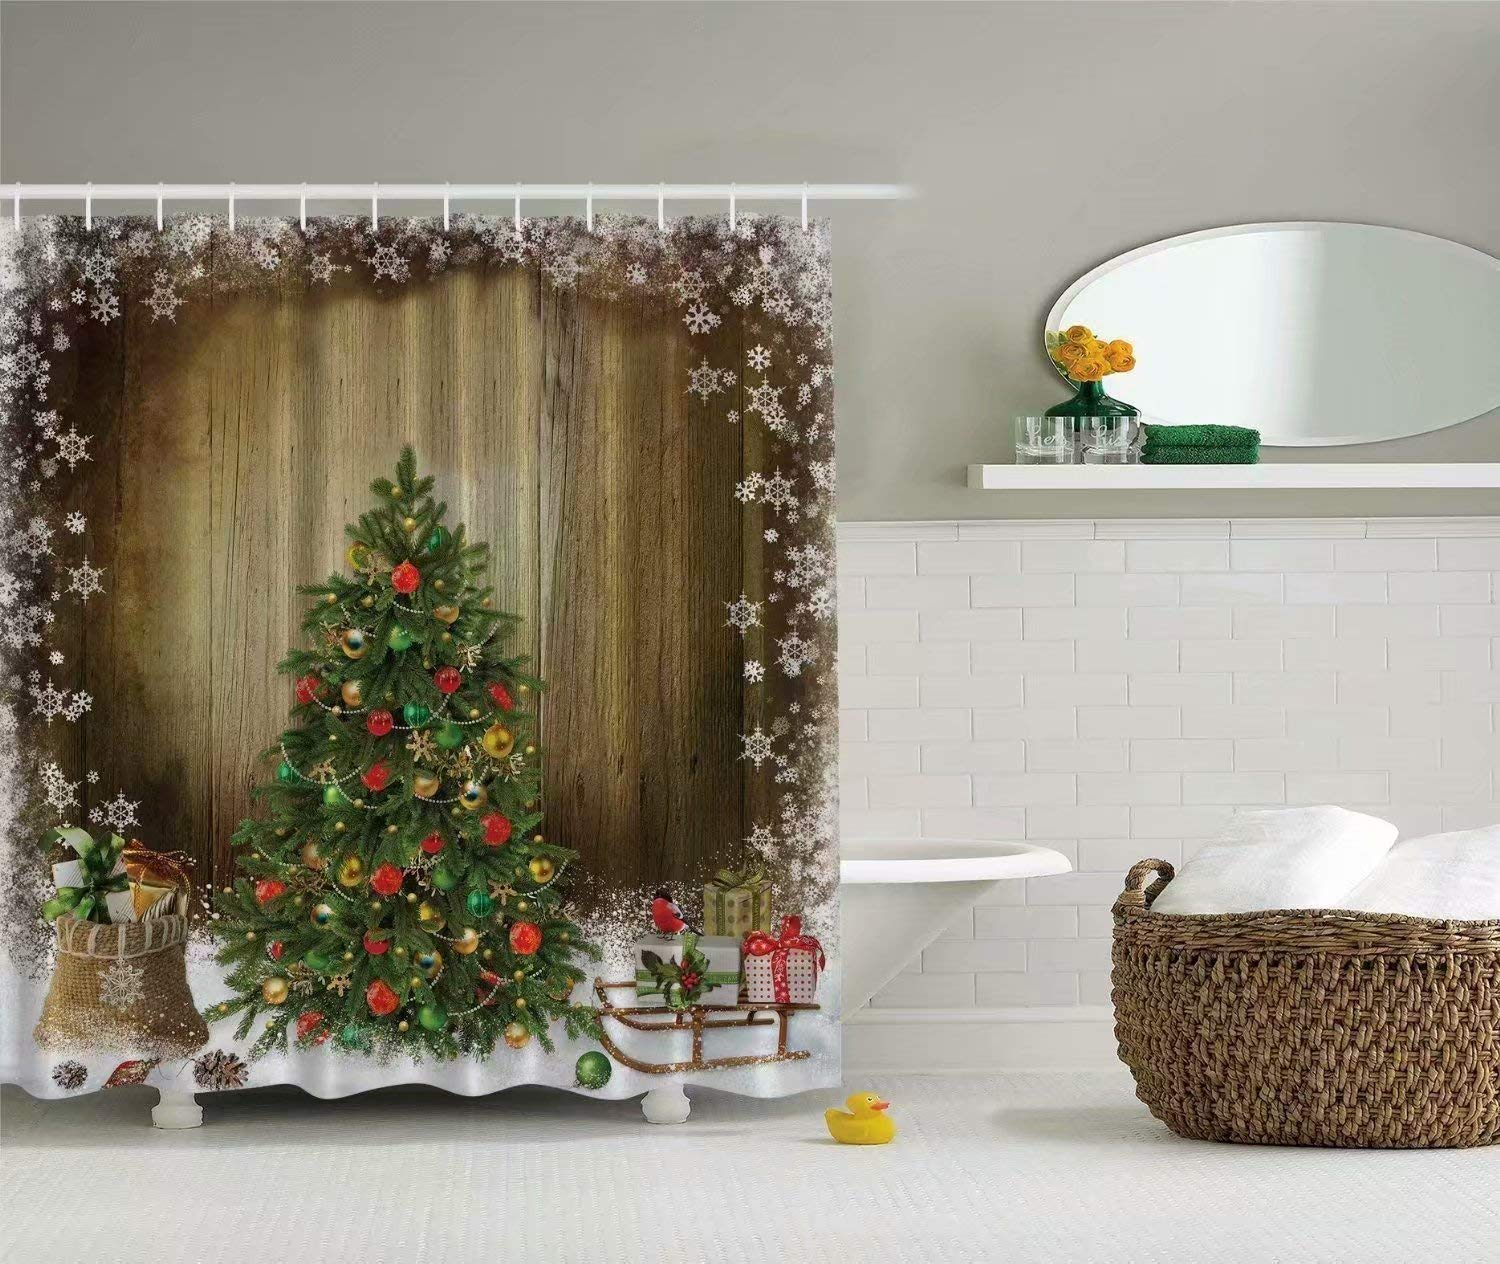 KANATSIU Christmas Tree Holiday Presents Vintage Style Shower Curtain 12 plactic Hooks,100% Made Polyester,Mildew Resistant & Machine Washable,Width x Height is 72X72